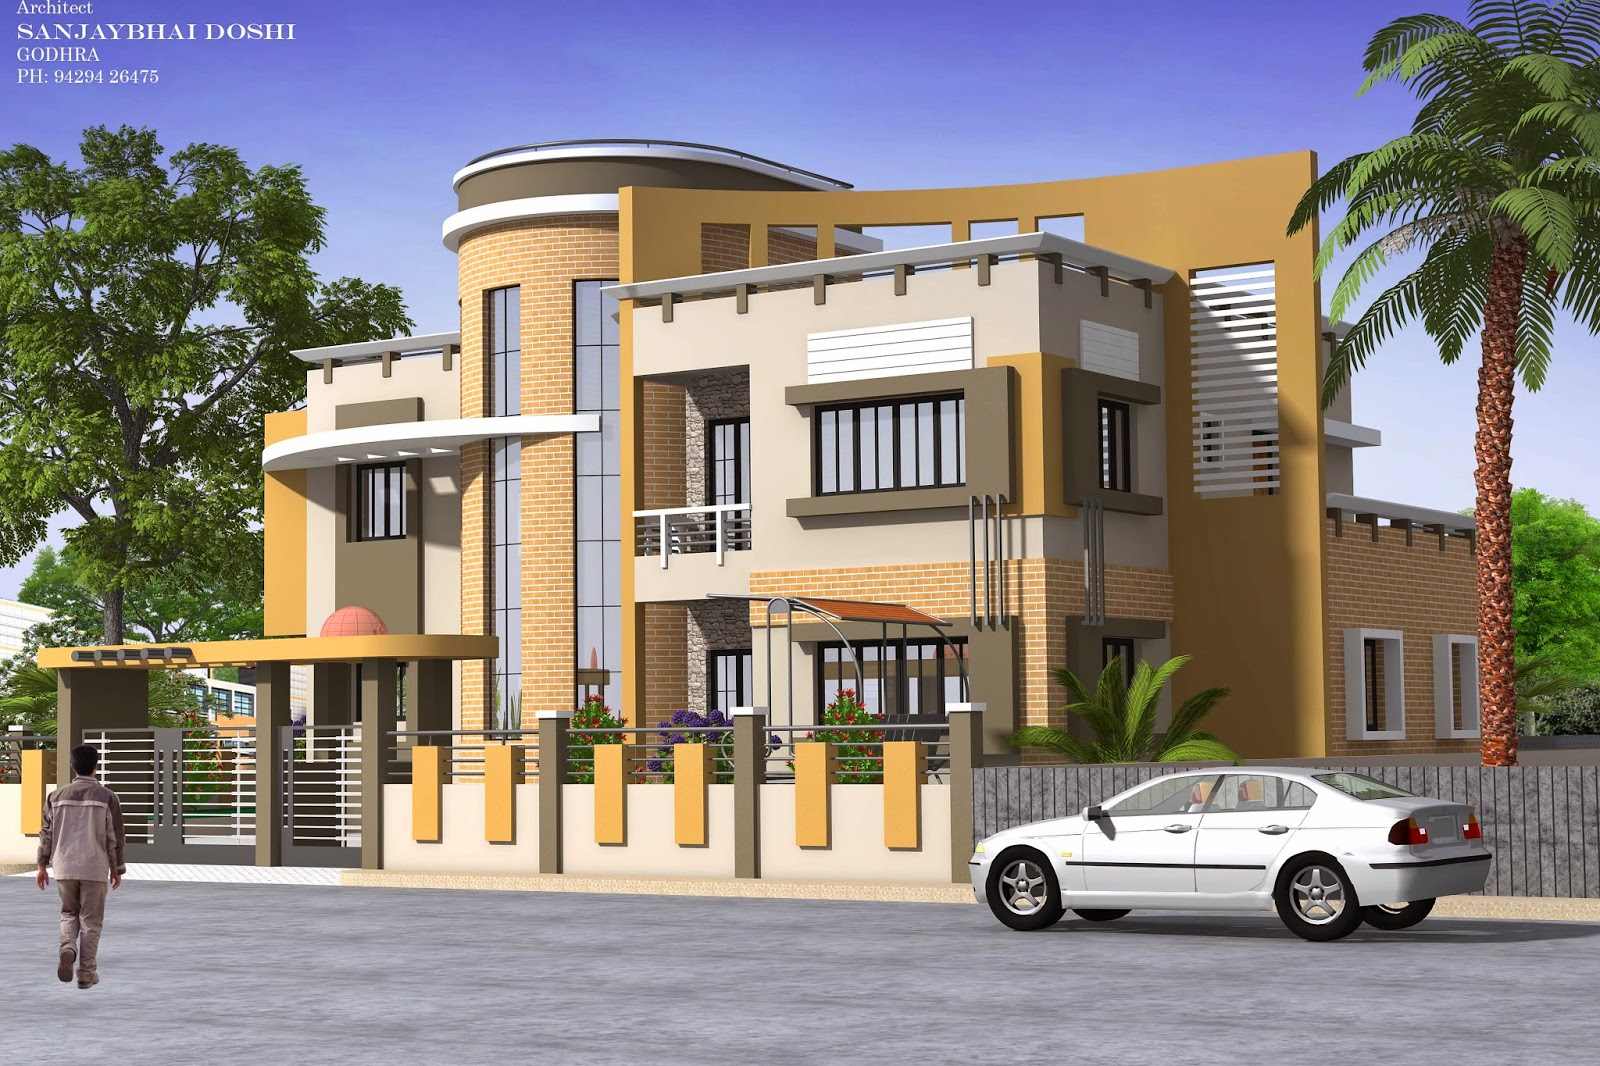 Fantastic house elevation rachana architect for Architecture design for home in vadodara